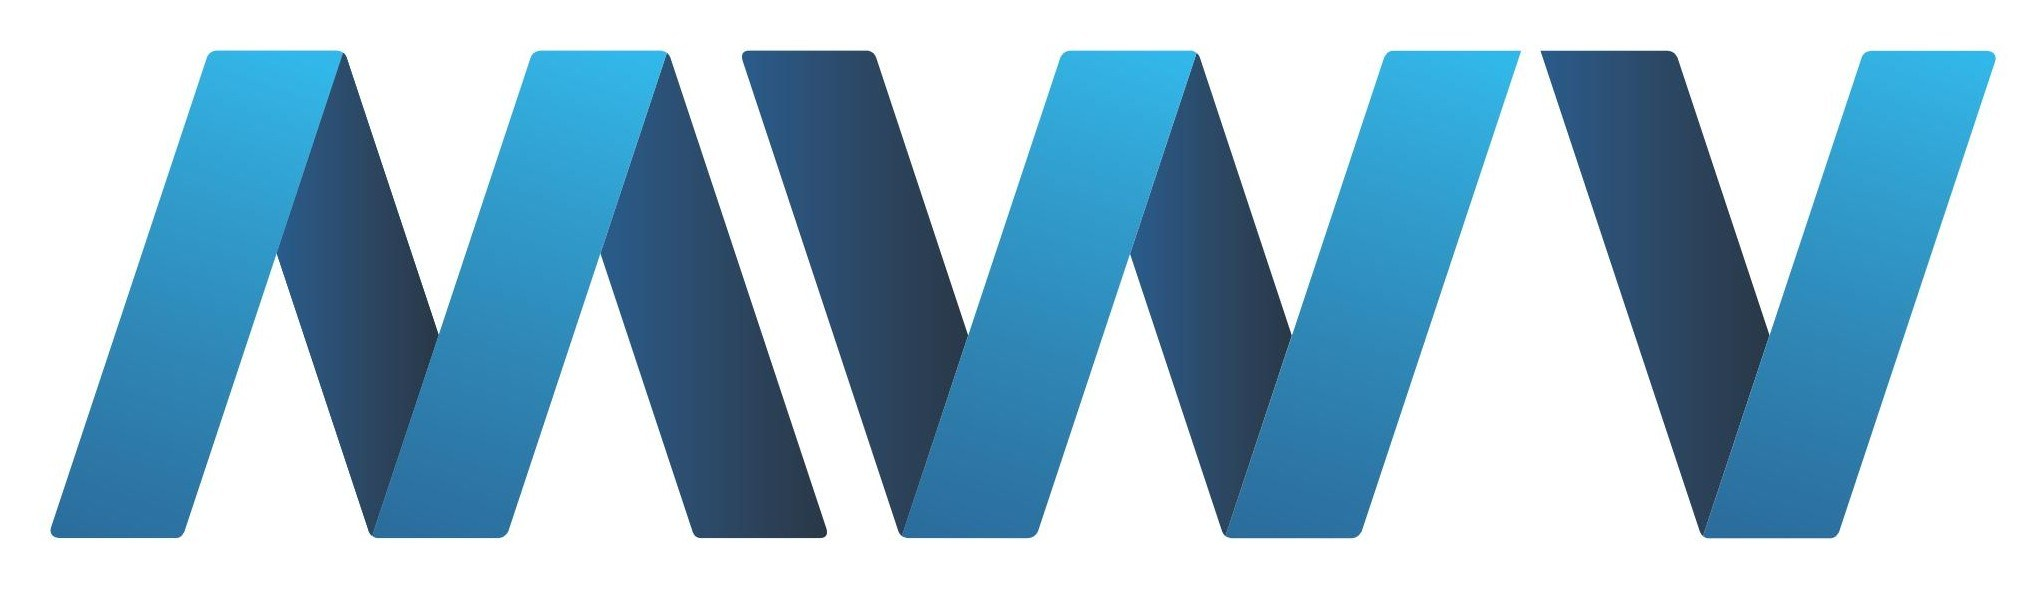 MeadWestvaco Logo [EPS File] png